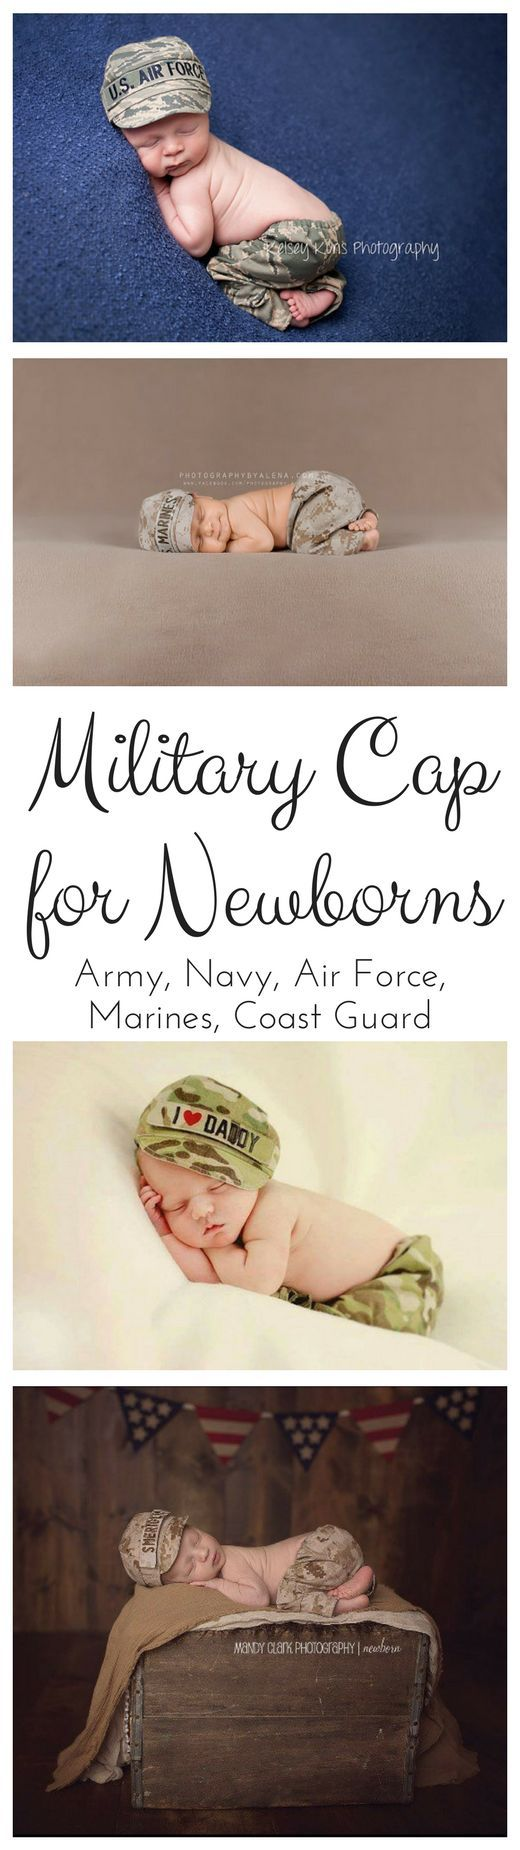 Adorable military hats and pants for newborn photos!  Even available for Navy #newborn #portraits #army #navy #marines #coastguard #airforce #affiliatelink